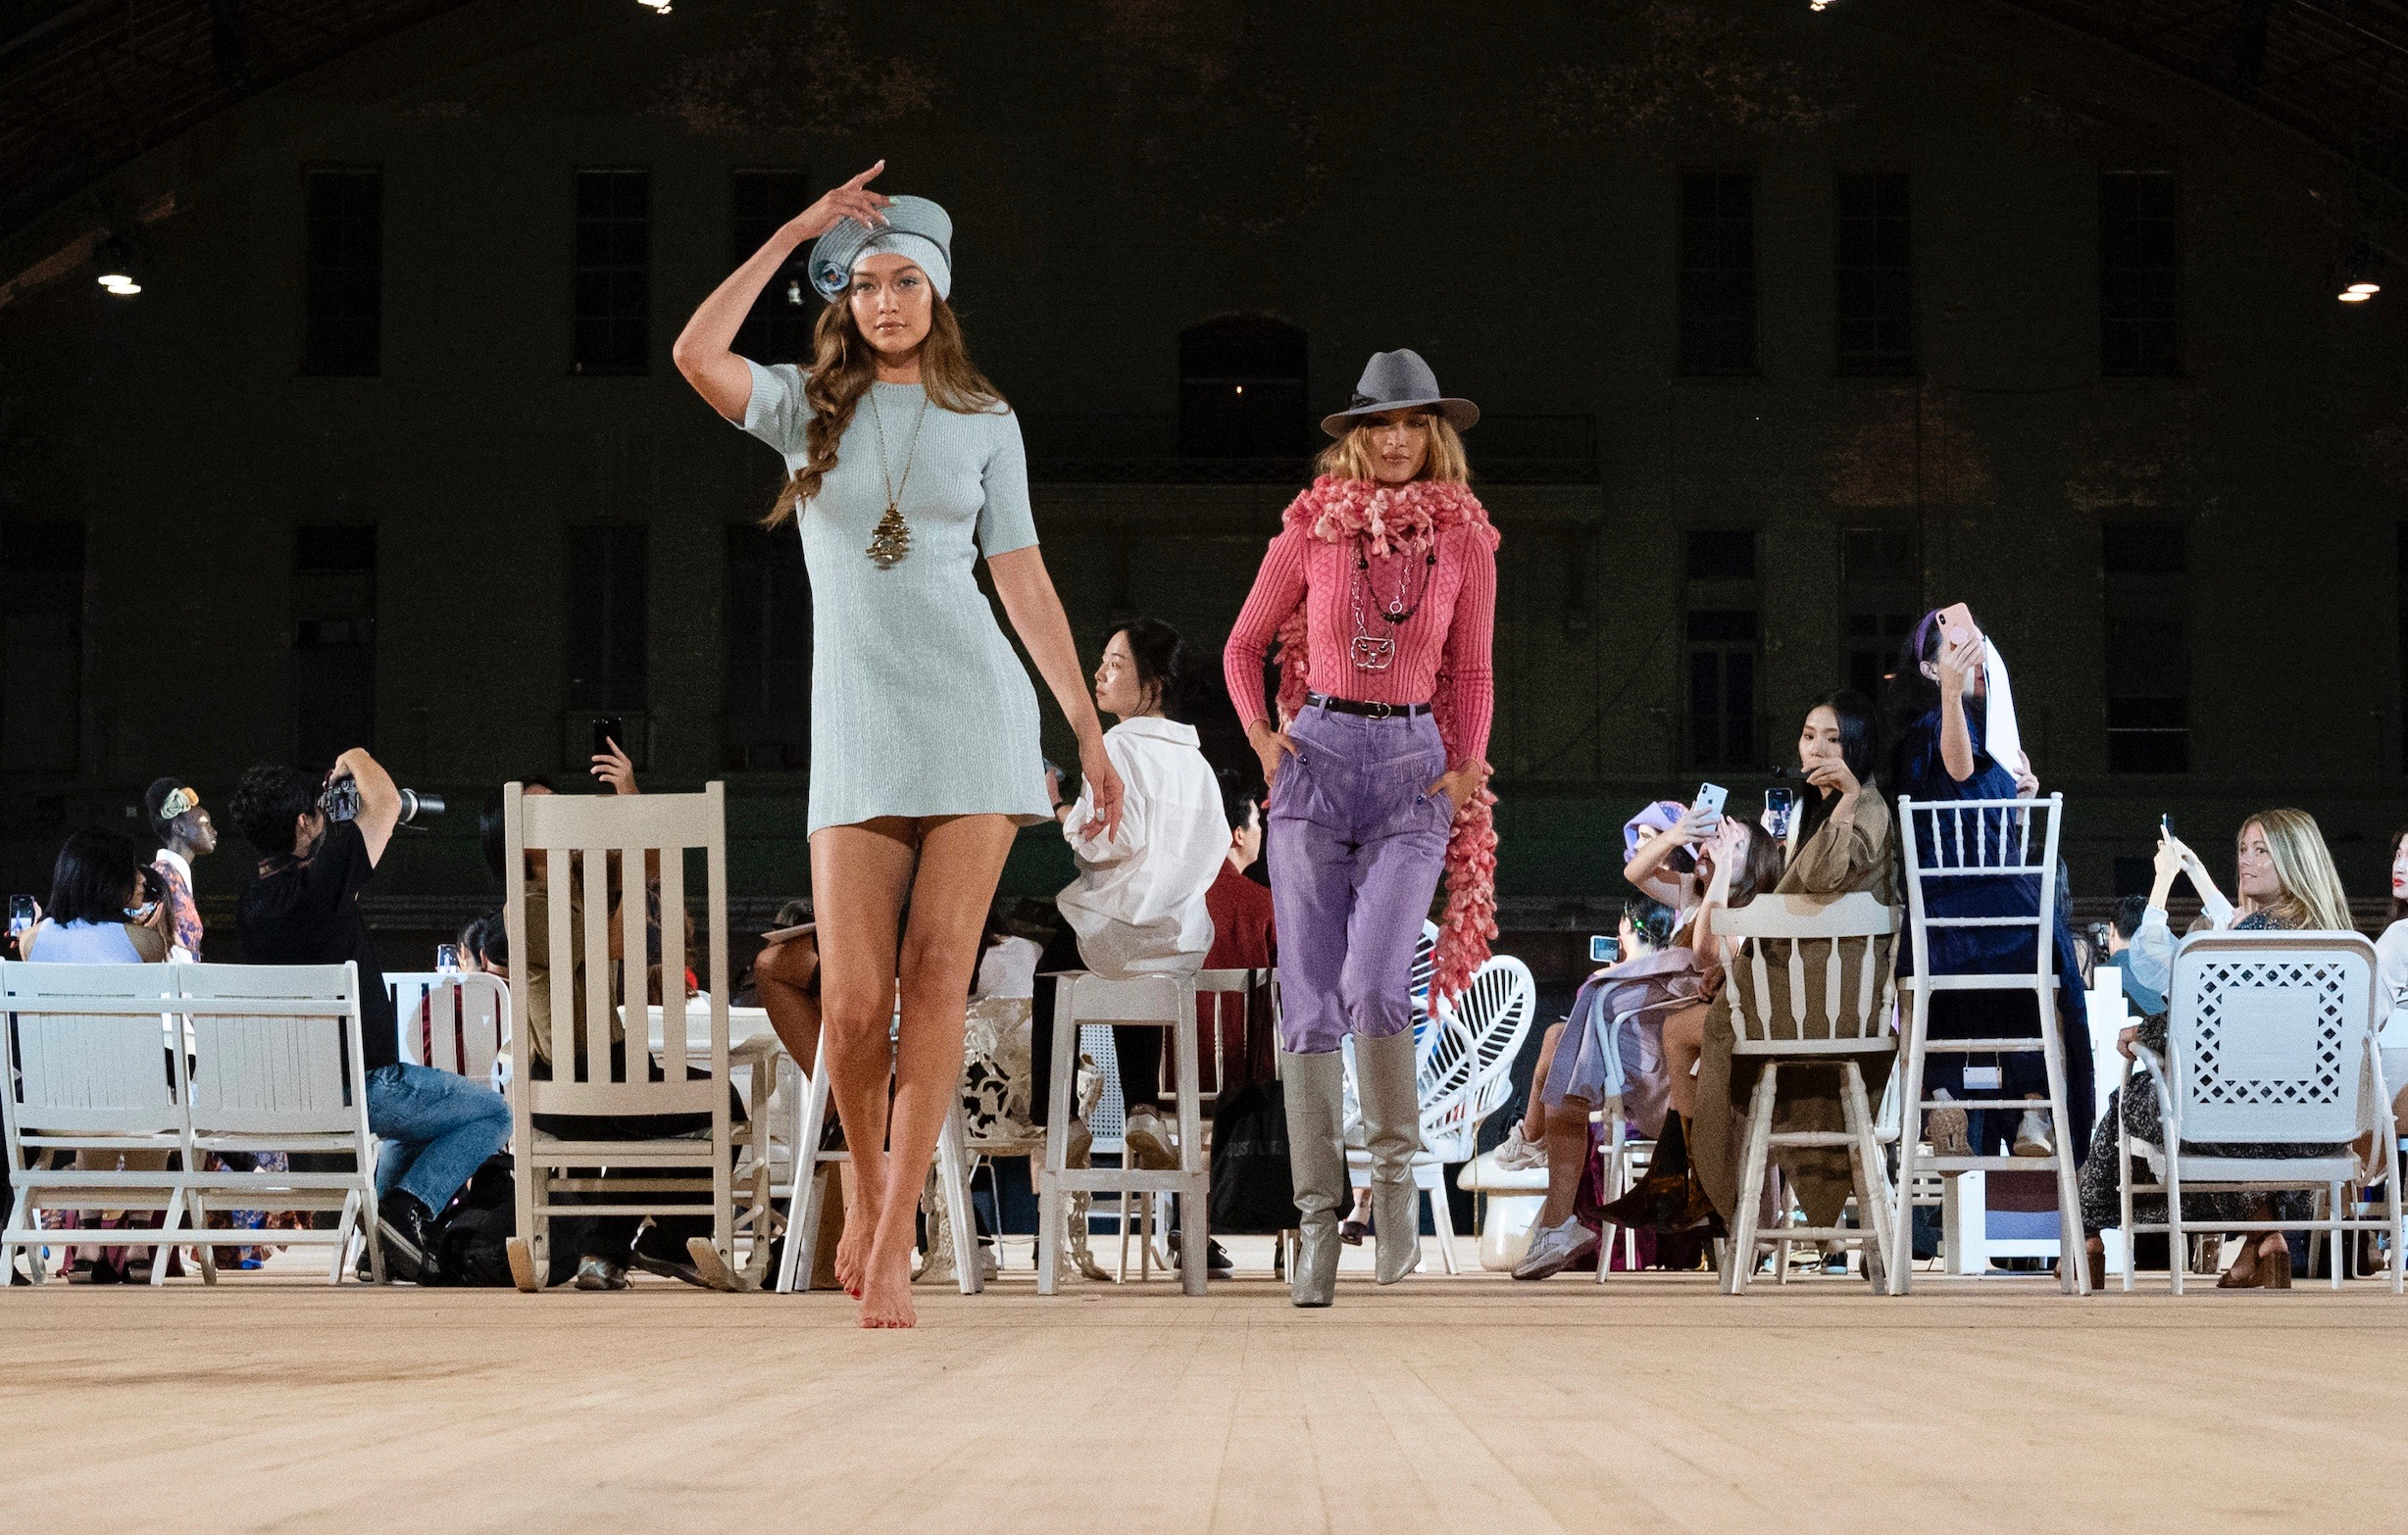 Modeling Marc Jacobs' ode to fashion through the years, Gigi Hadid, left, sports a mini dress and hat resembling a 1960s airline hostess uniform, as her sister Bella Hadid wears a nouveau cowboy design.